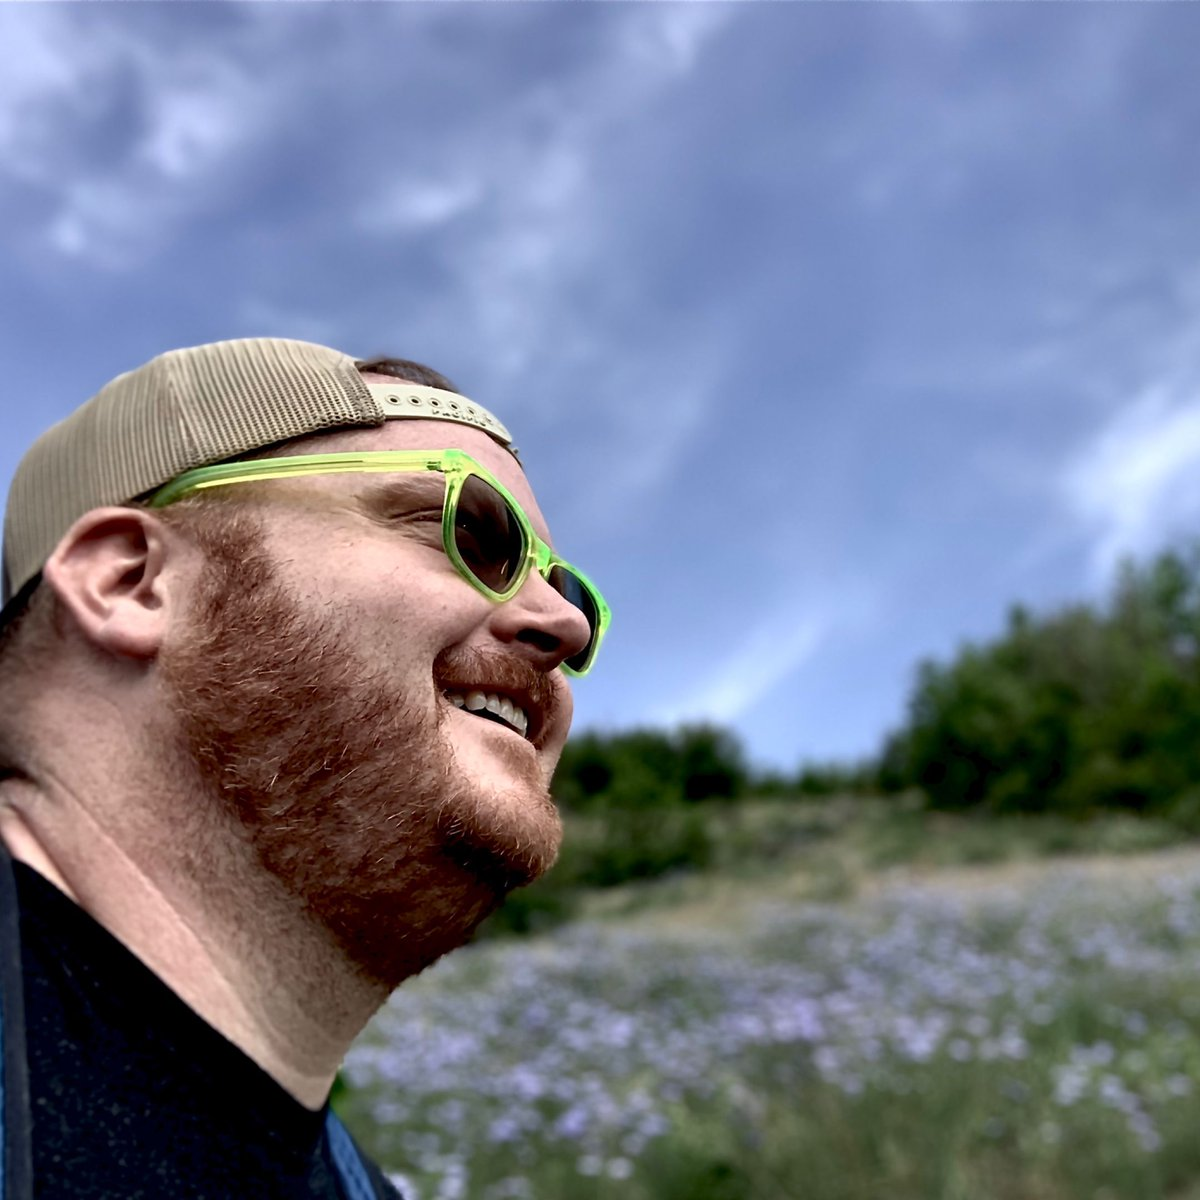 """The richness I achieve comes from Nature, the source of my inspiration."" –Claude Monet  #trailrunningviews #nature #run #gingerbear #gaybear #gaychub #gaychubb #lgbtoutdoors #hiking #optoutside #plussizeathlete #plussize #plussizemodel #curvy #bodypositive #plussizerunnerpic.twitter.com/fKKA882ZKk"